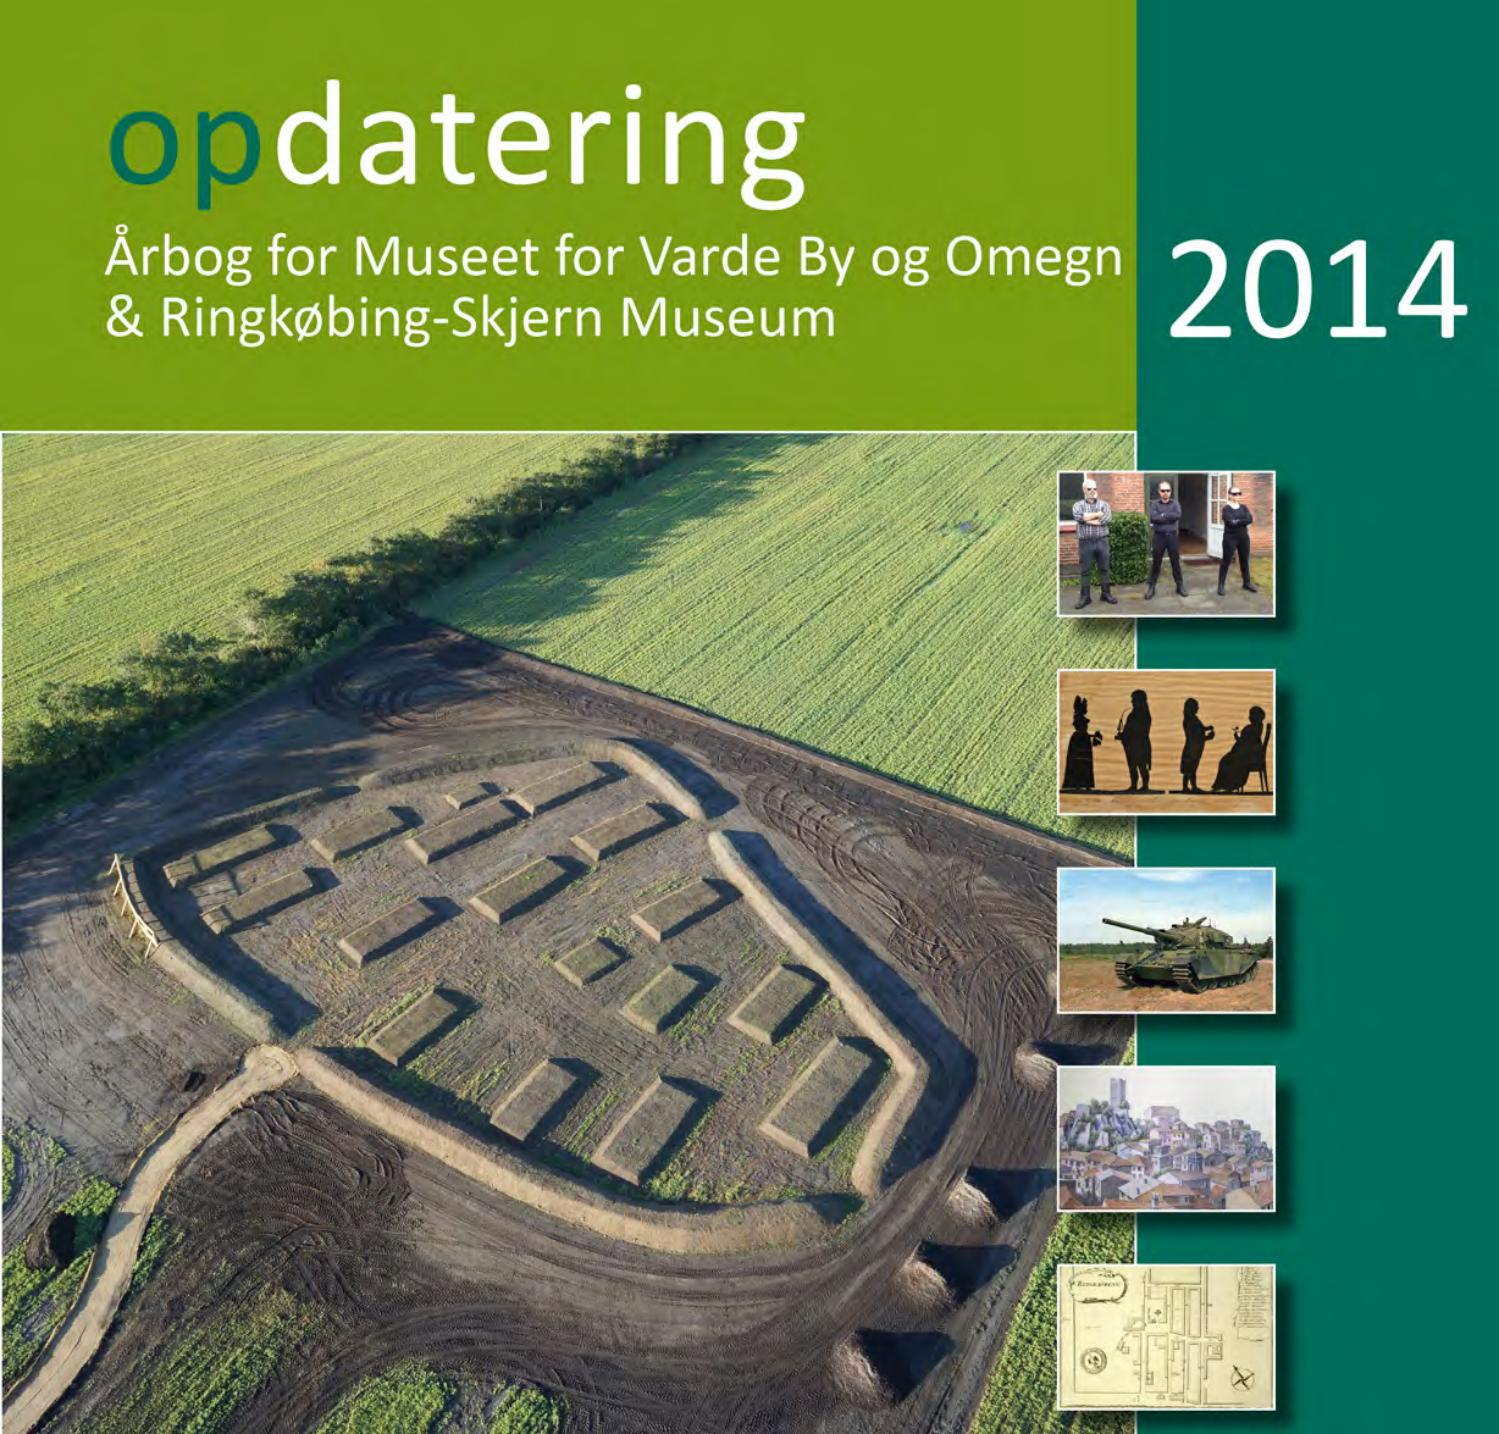 6c74c67fe30 Opdatering 2014 by Levende Historie - issuu